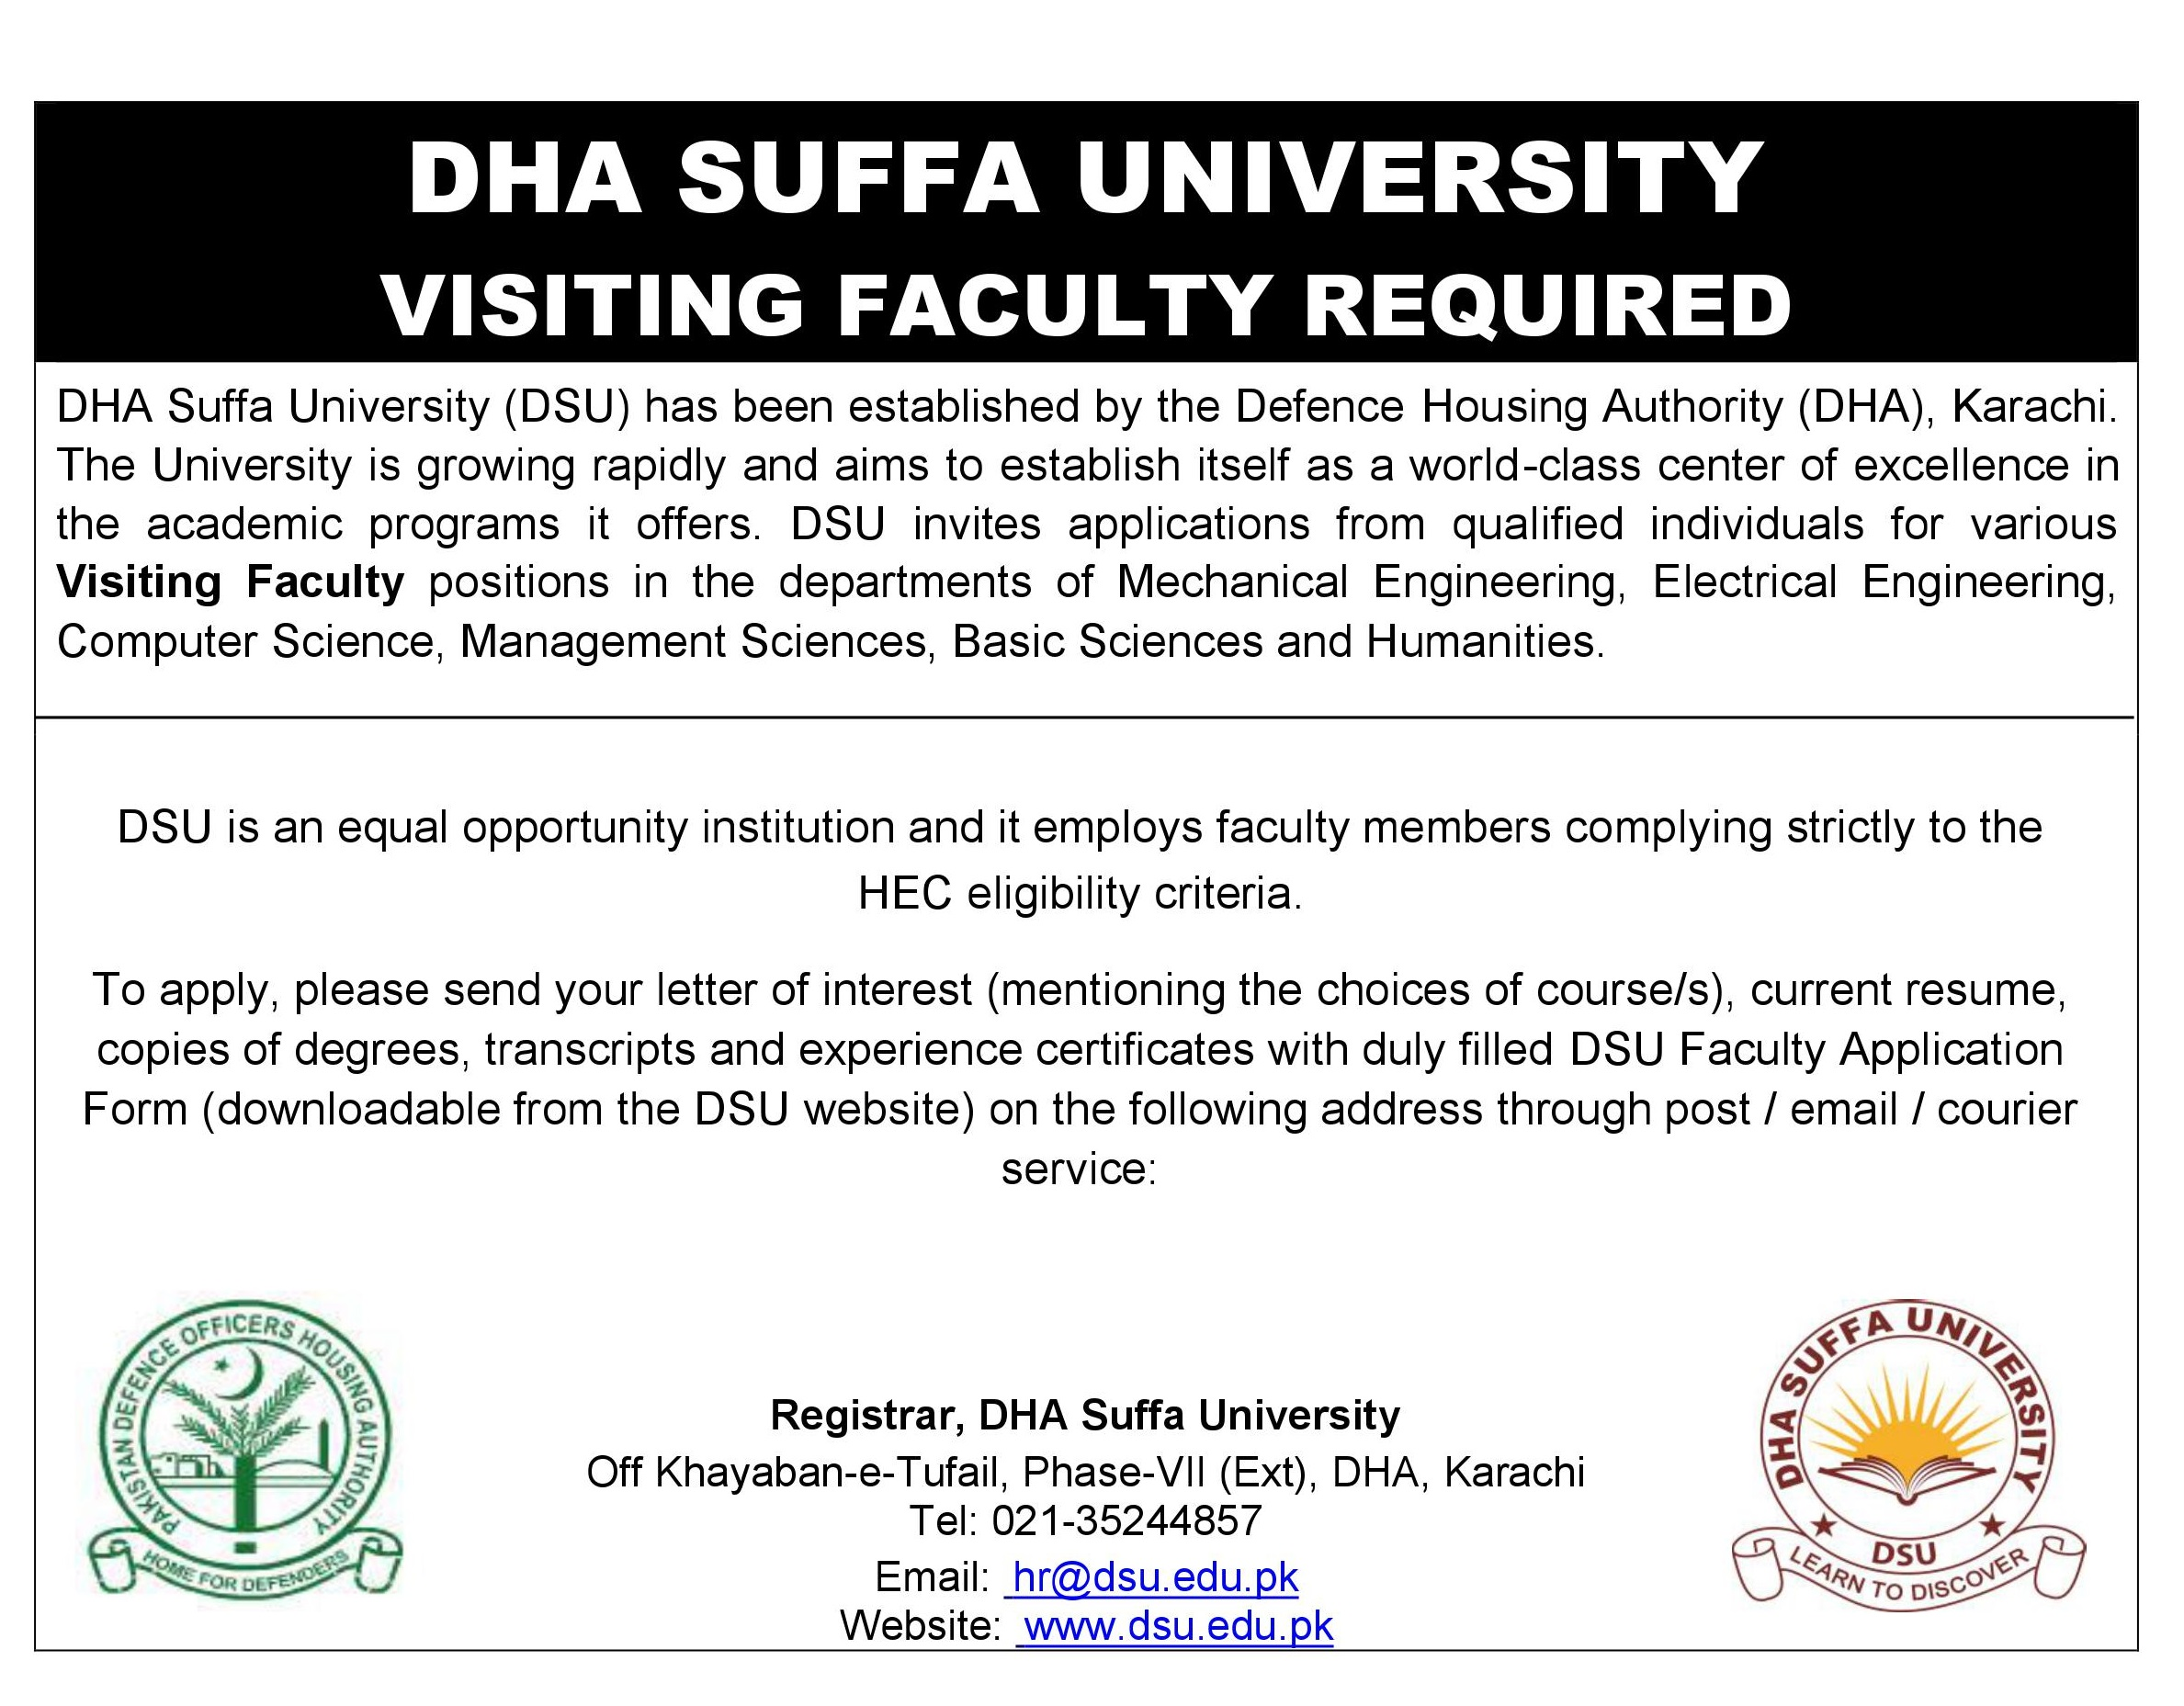 CAREERS – DHA Suffa University